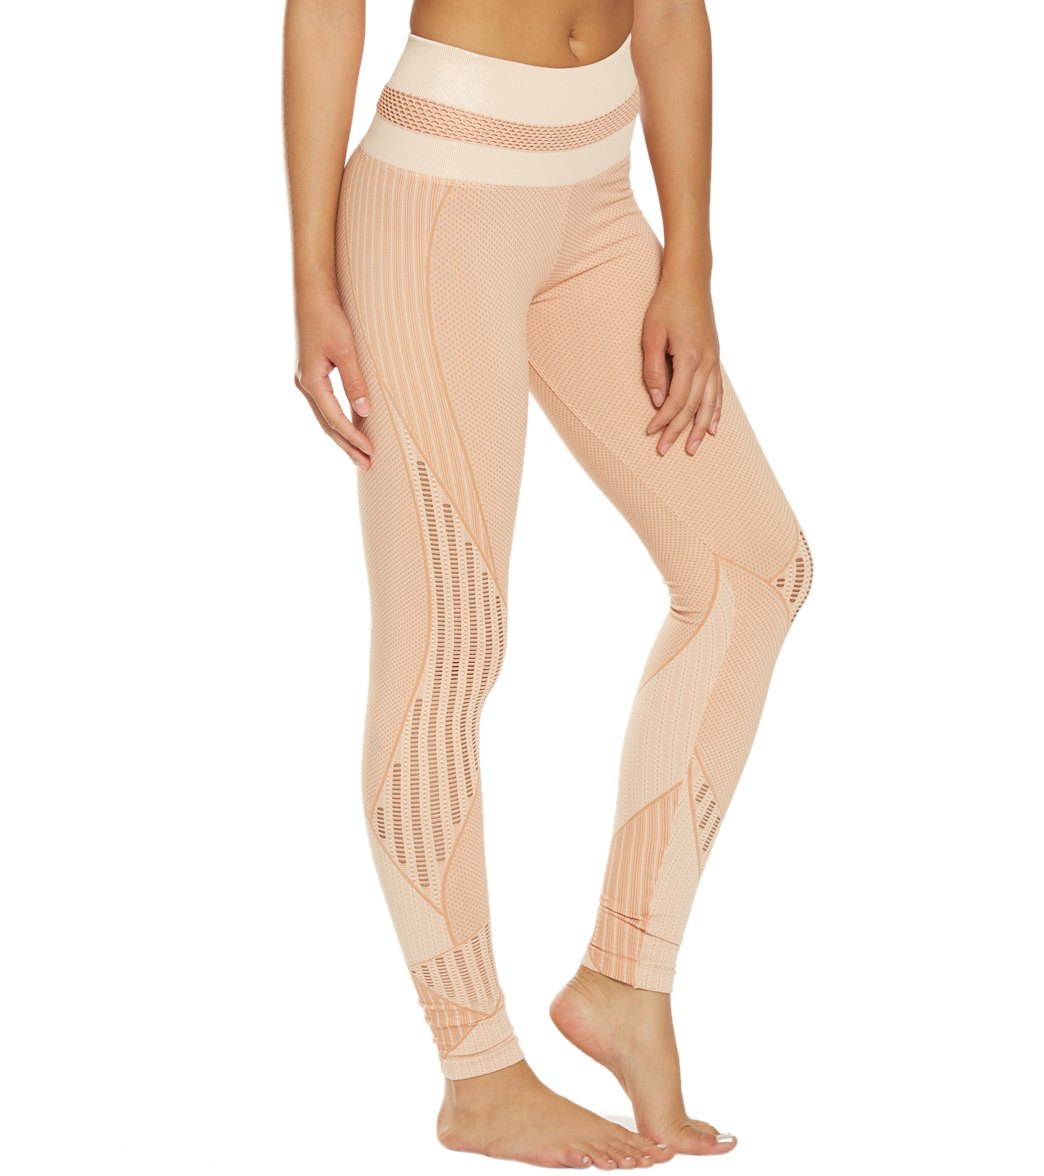 7b5b14a79ddb2 NUX Get Shredded High Waisted Seamless Yoga Leggings at SwimOutlet ...